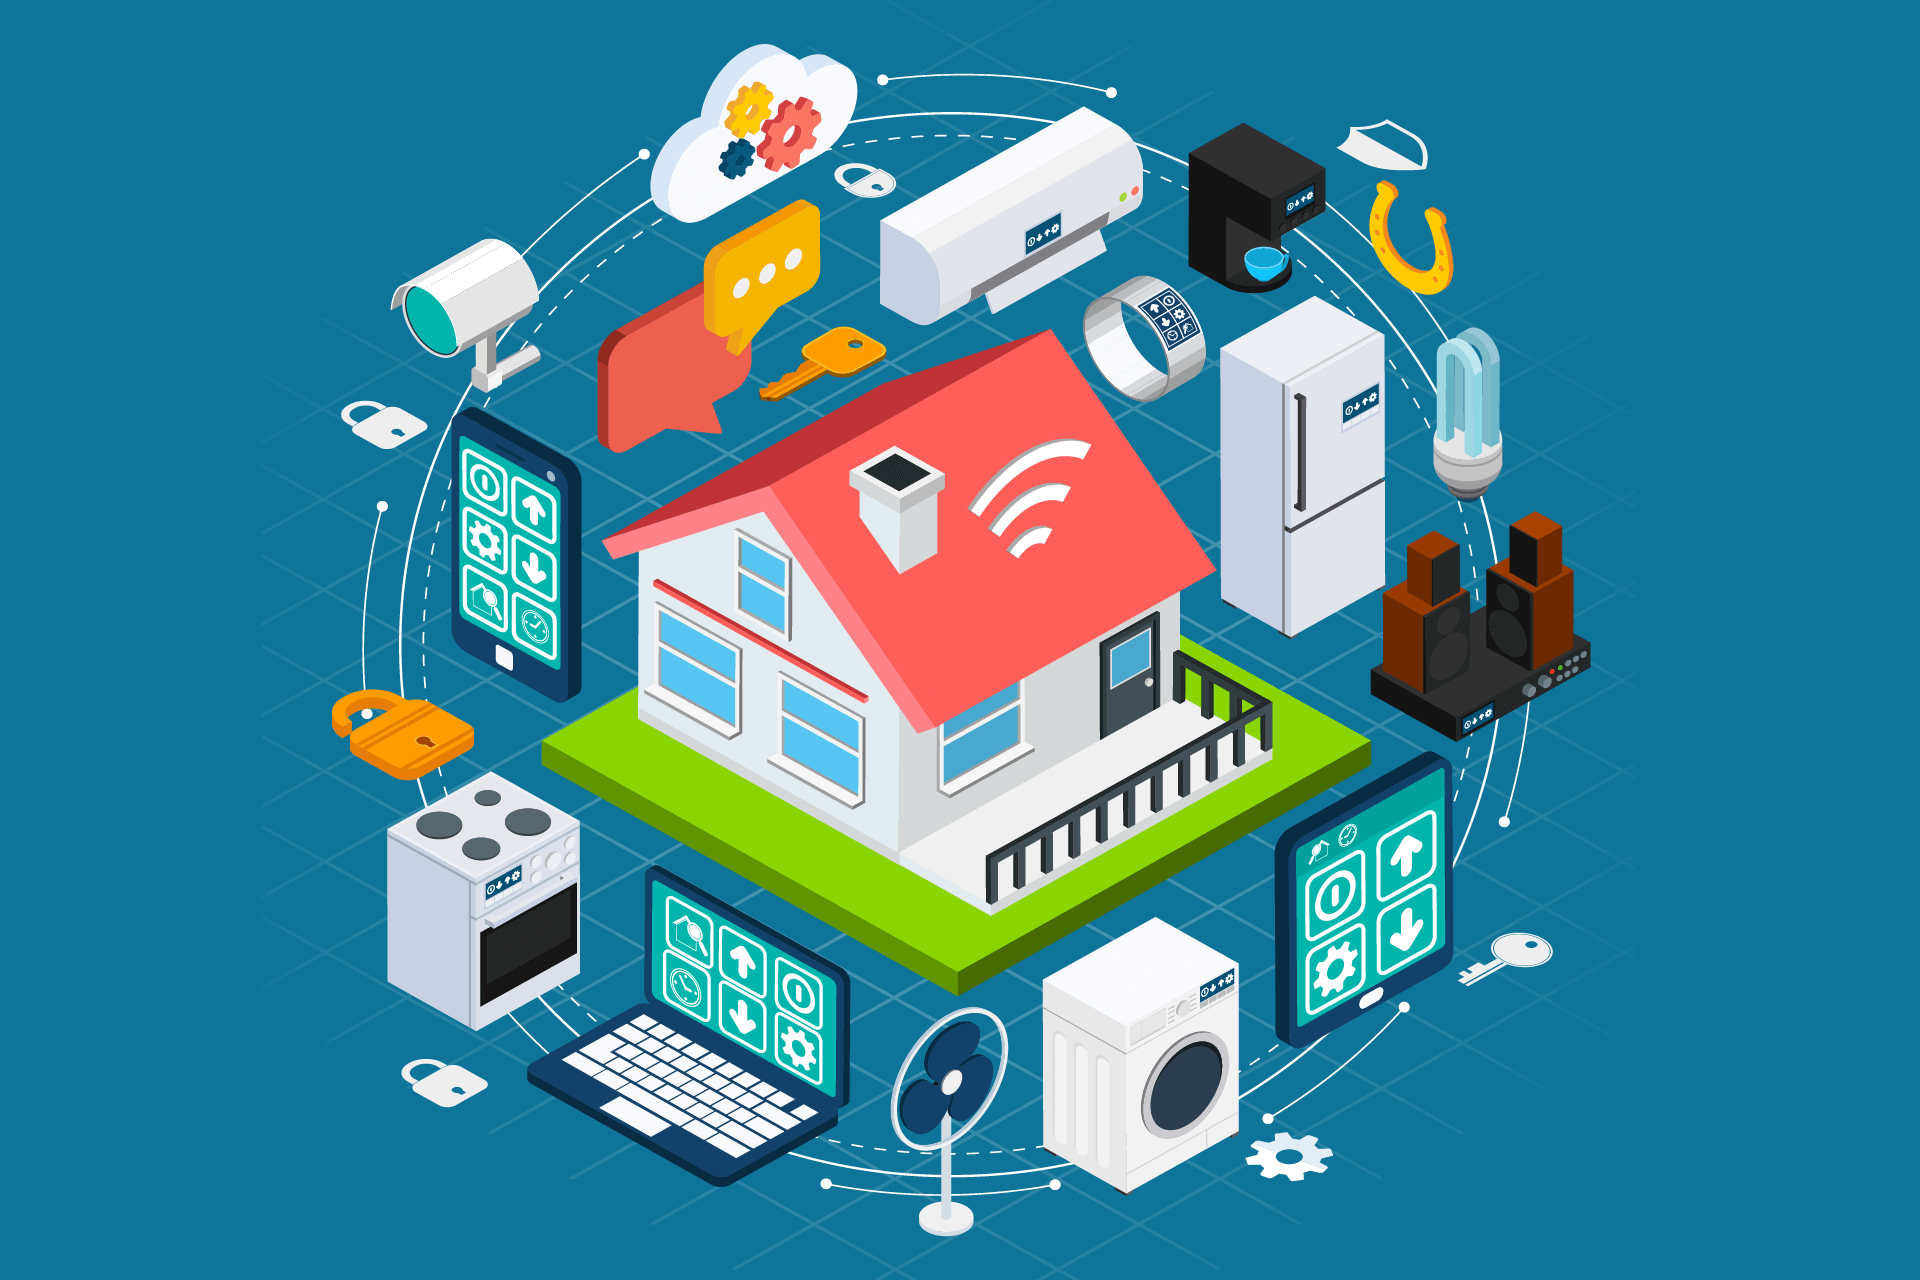 WHY HOME AUTOMATION